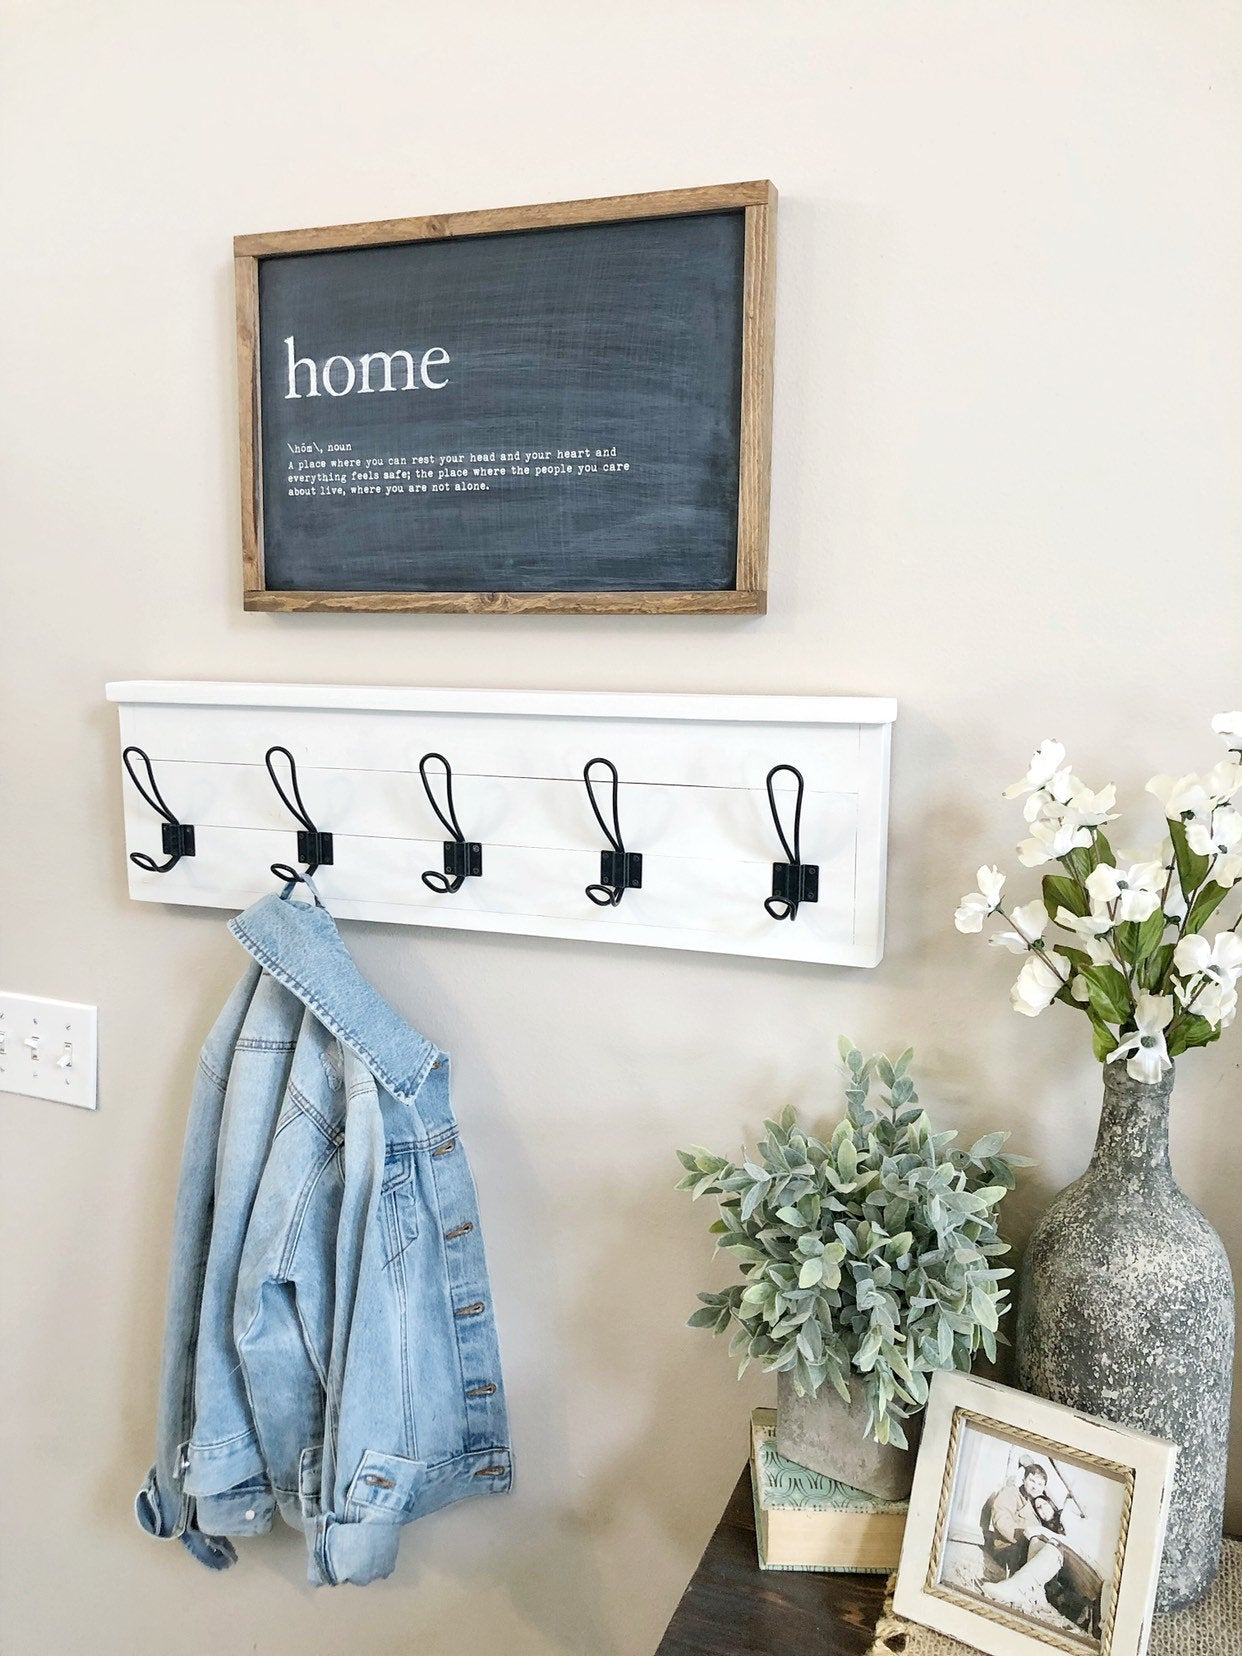 Coat Rack - Towel Rack - Shiplap Coat Rack - Entryway Coat Rack - Coat Rack Shelf - Entryway storage - Bathroom Storage - Towel storage